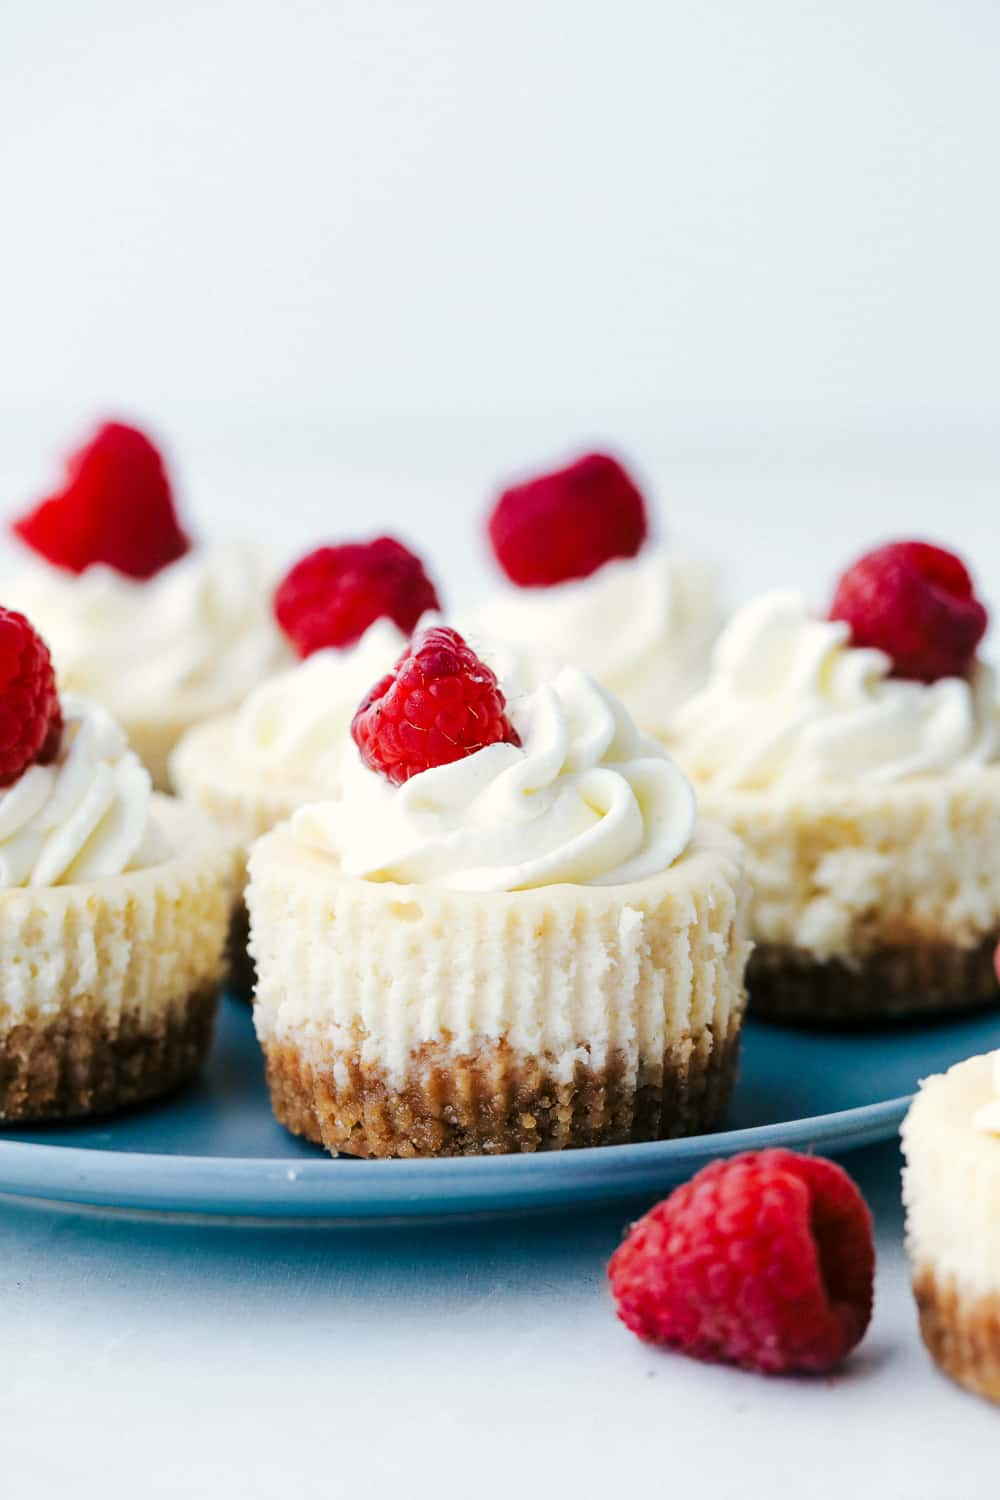 Mini cheese cakes on a plate with fresh raspberries.